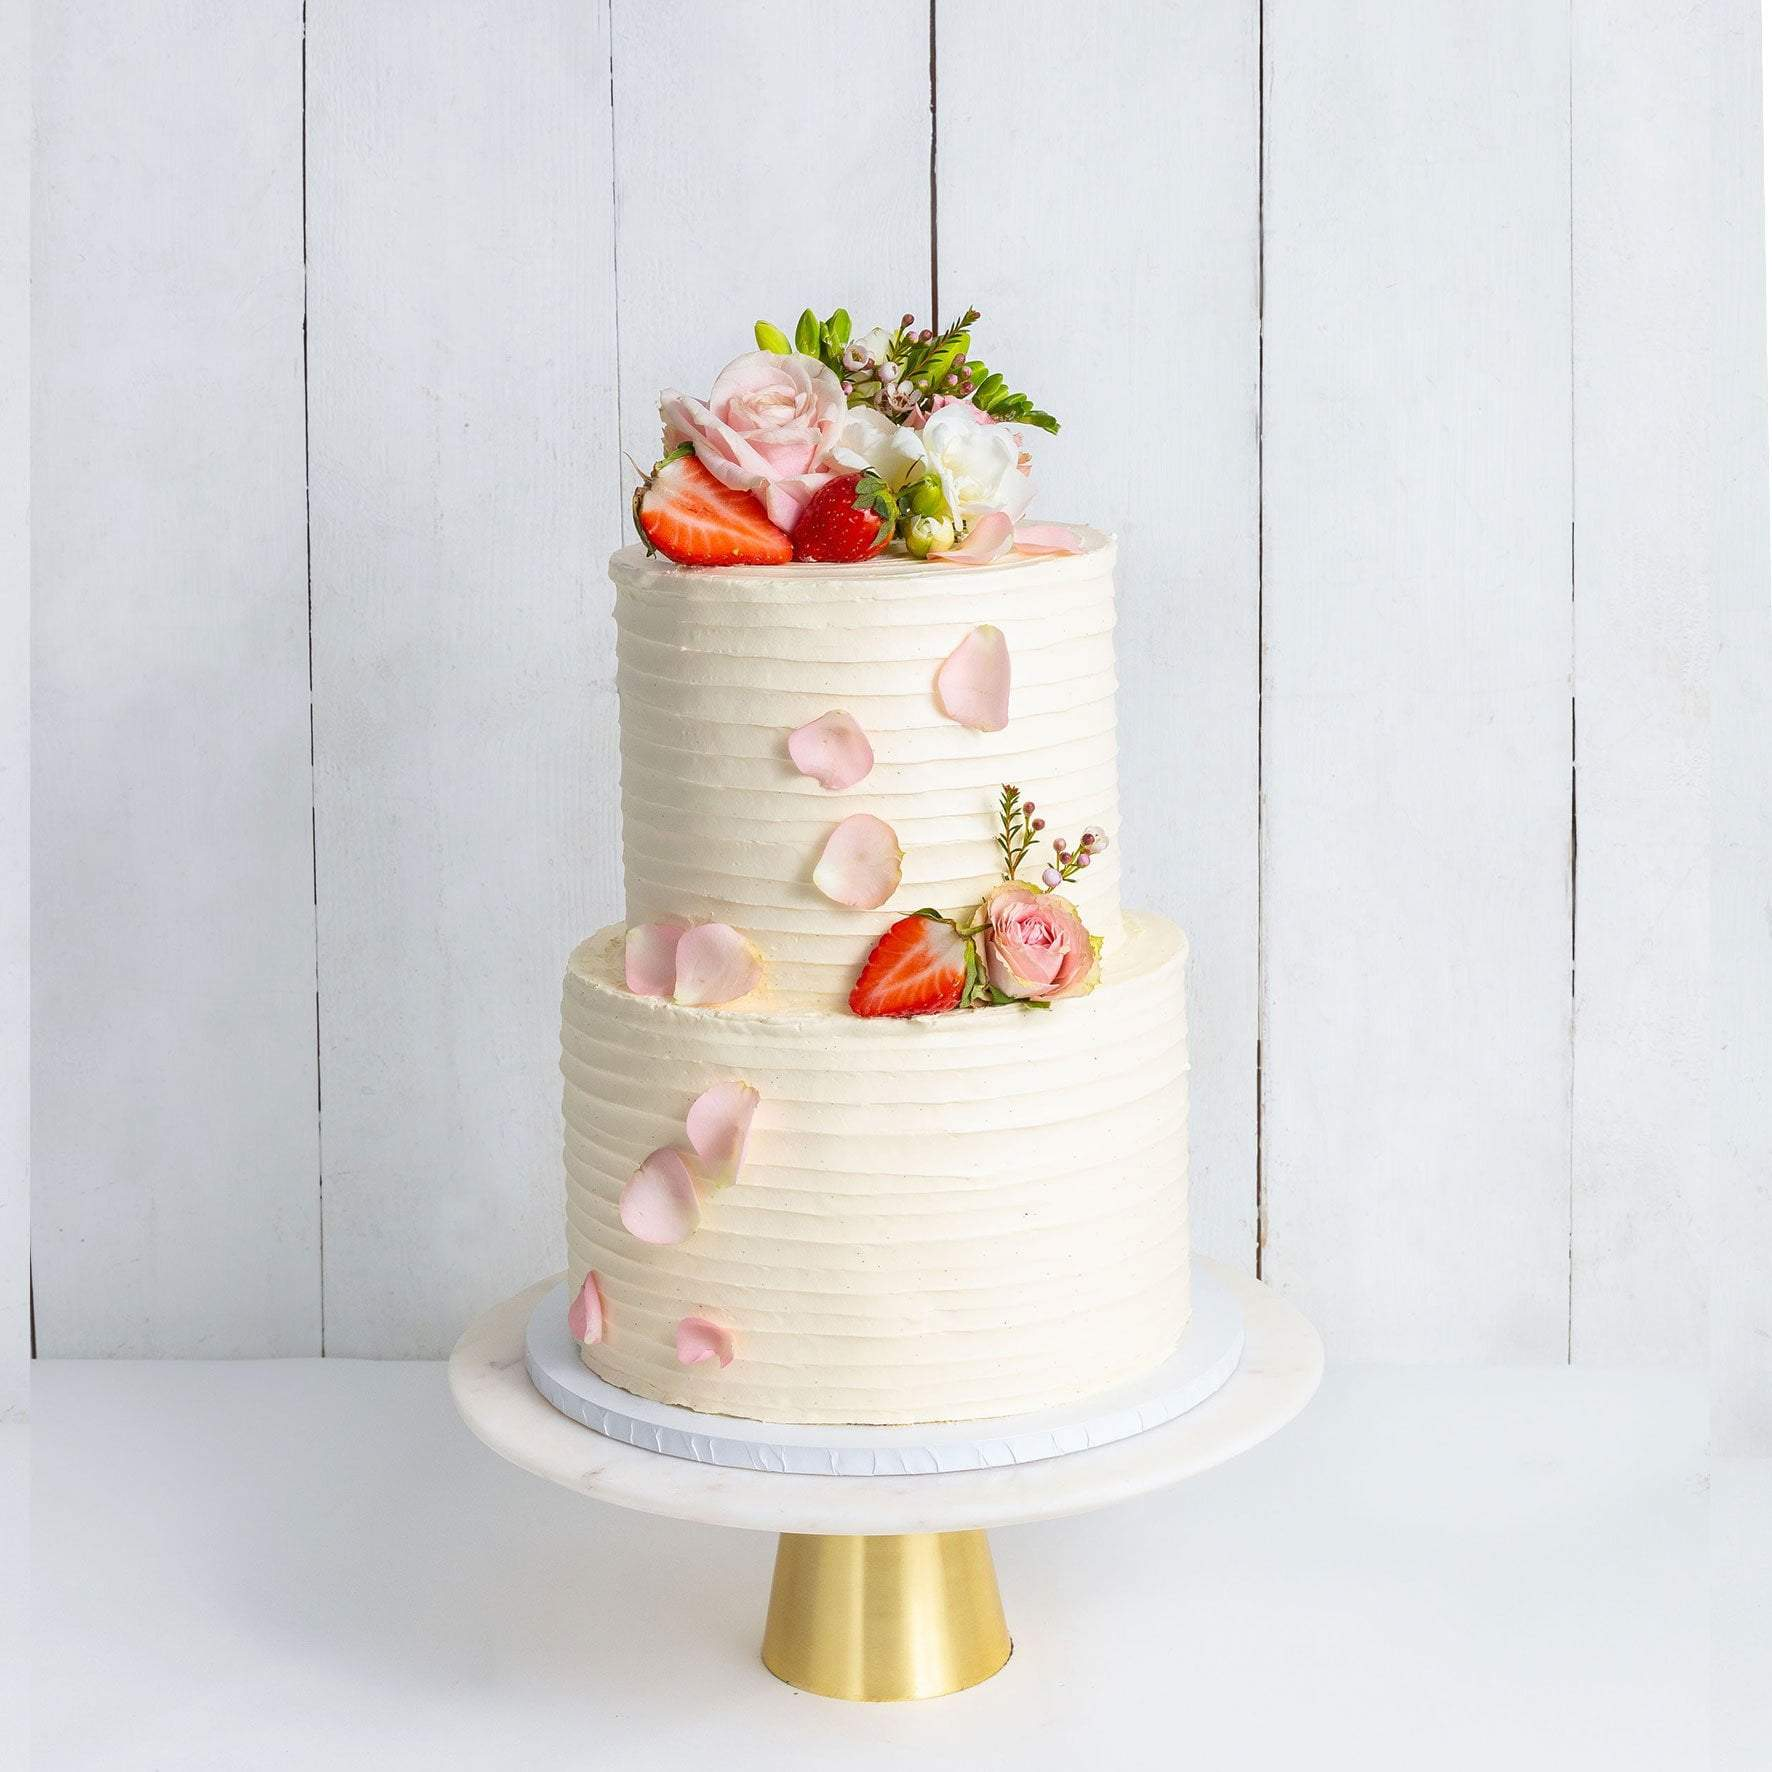 Miraculous 2 Tier Wedding Cakes London Delivery Cutter Squidge Personalised Birthday Cards Petedlily Jamesorg